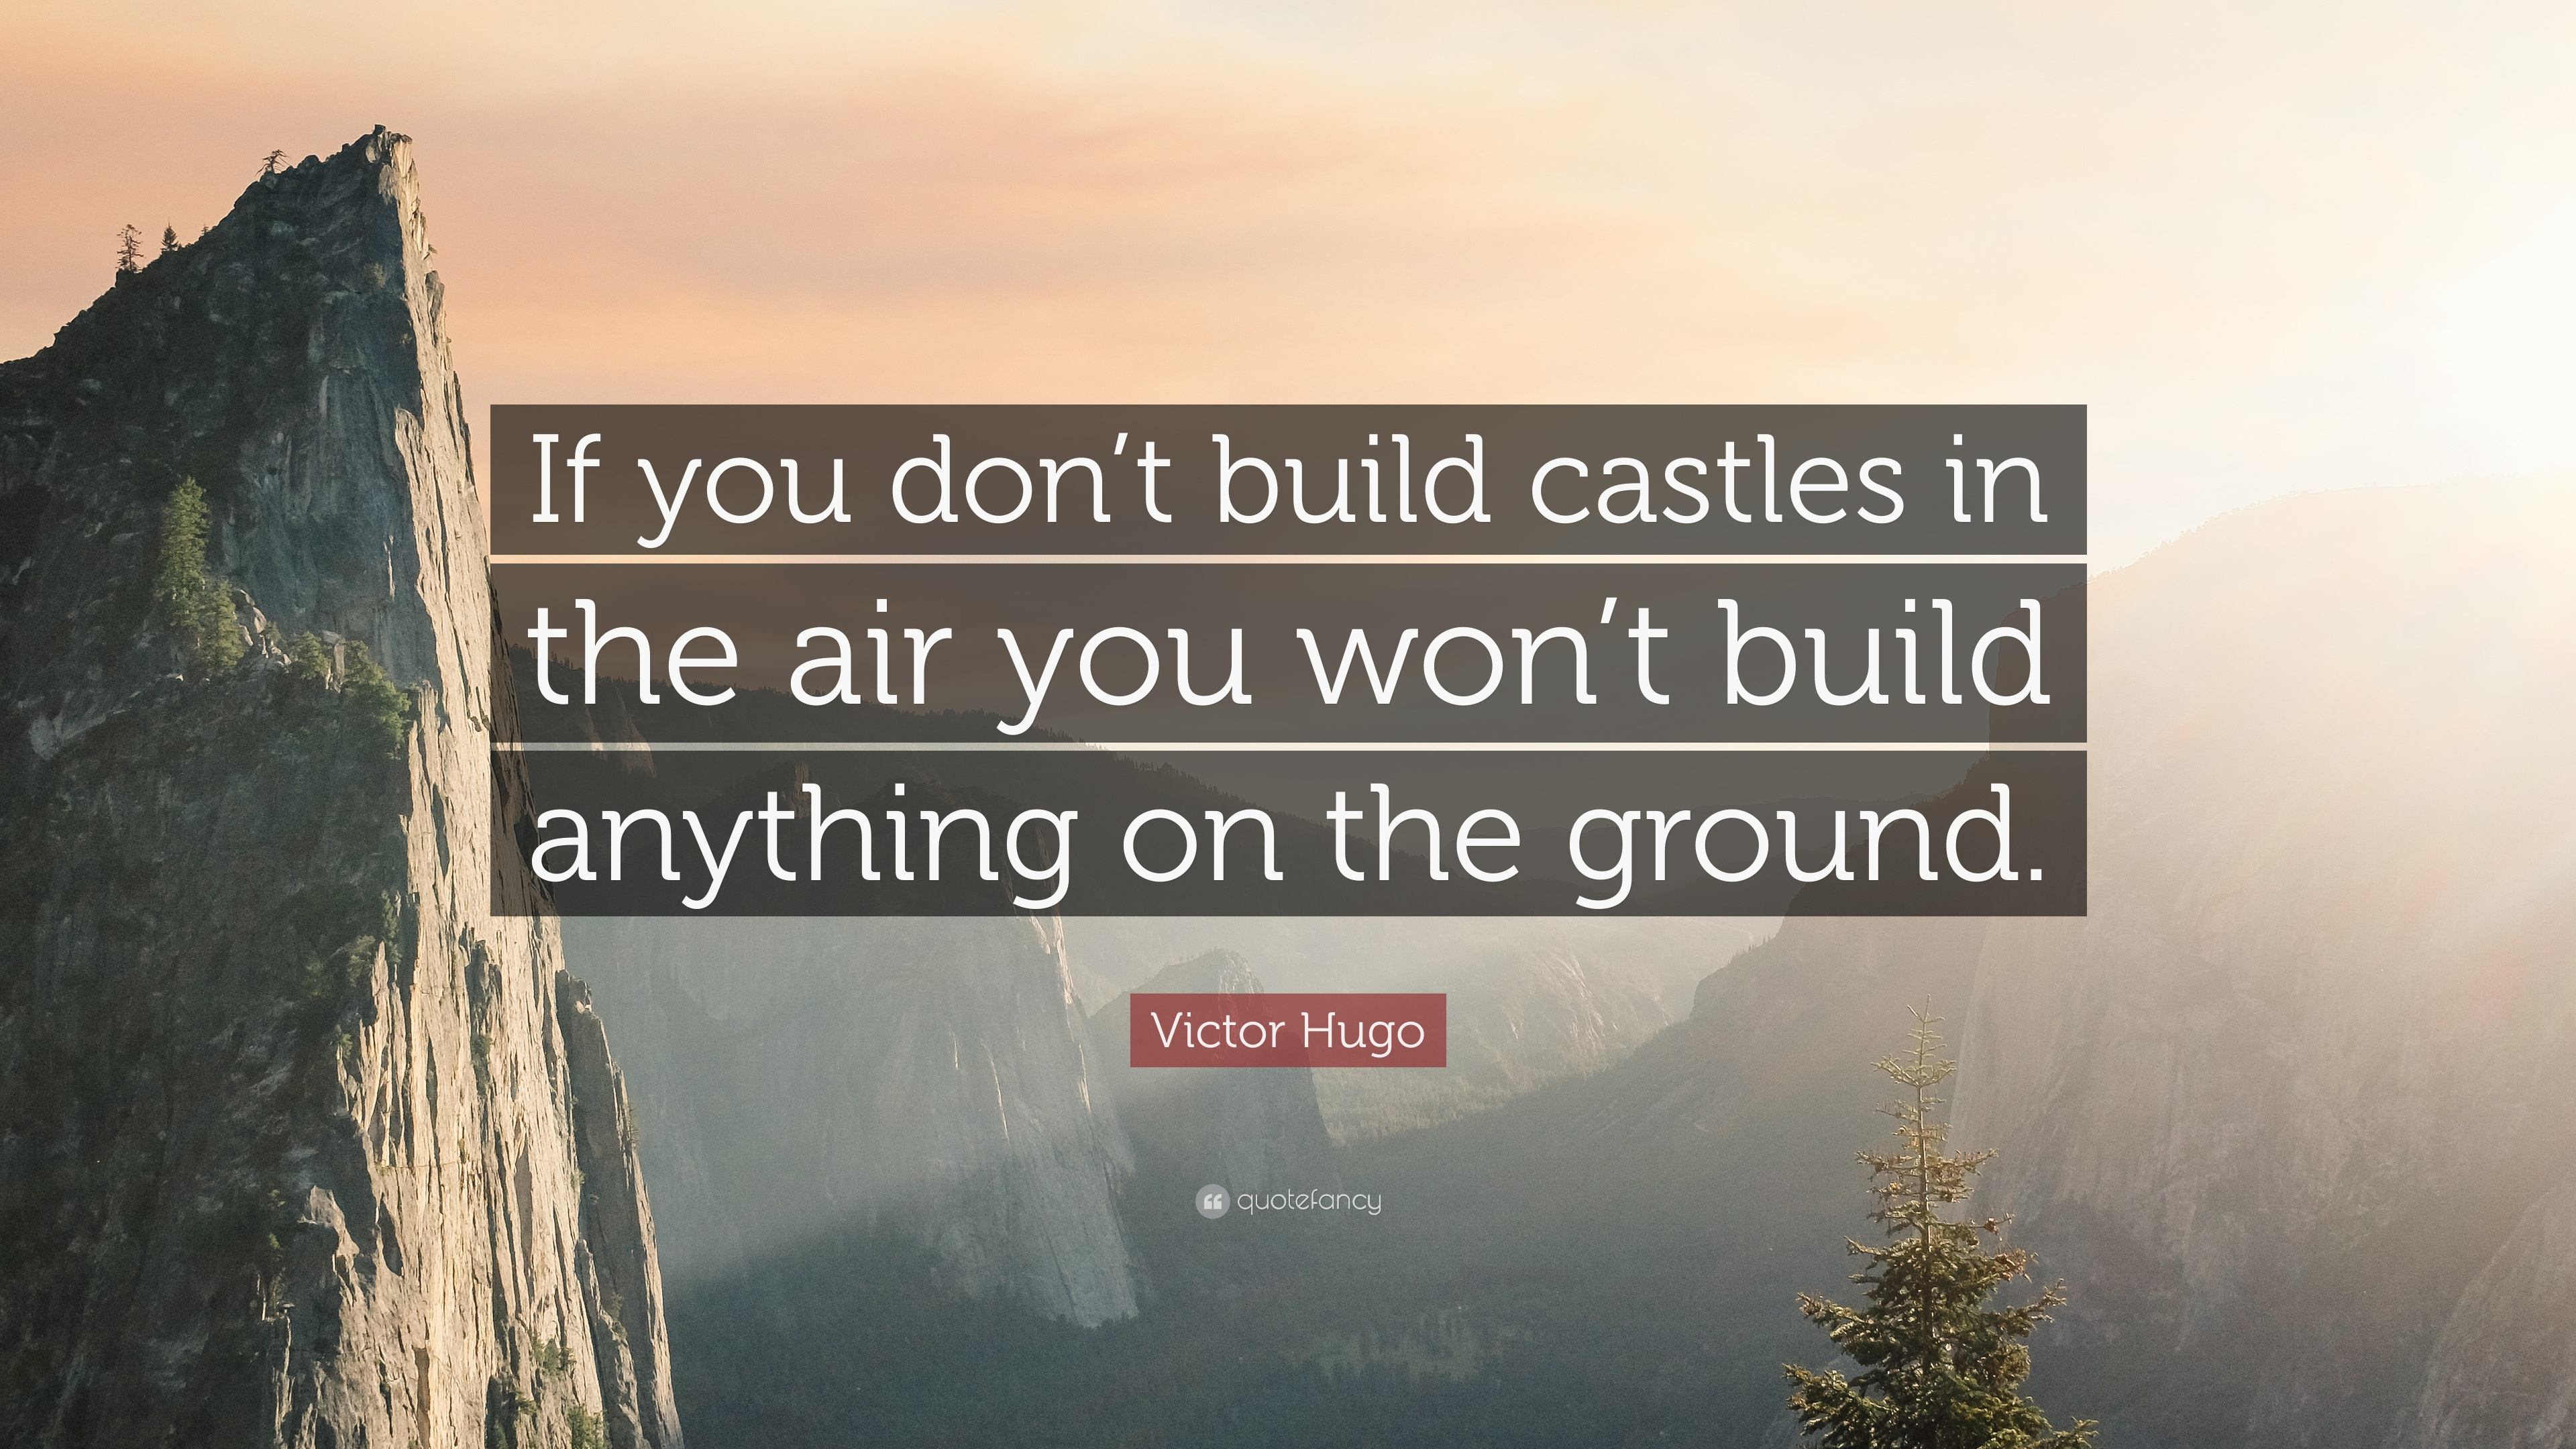 Victor Hugo Quote If You Dont Build Castles In The Air You Wont